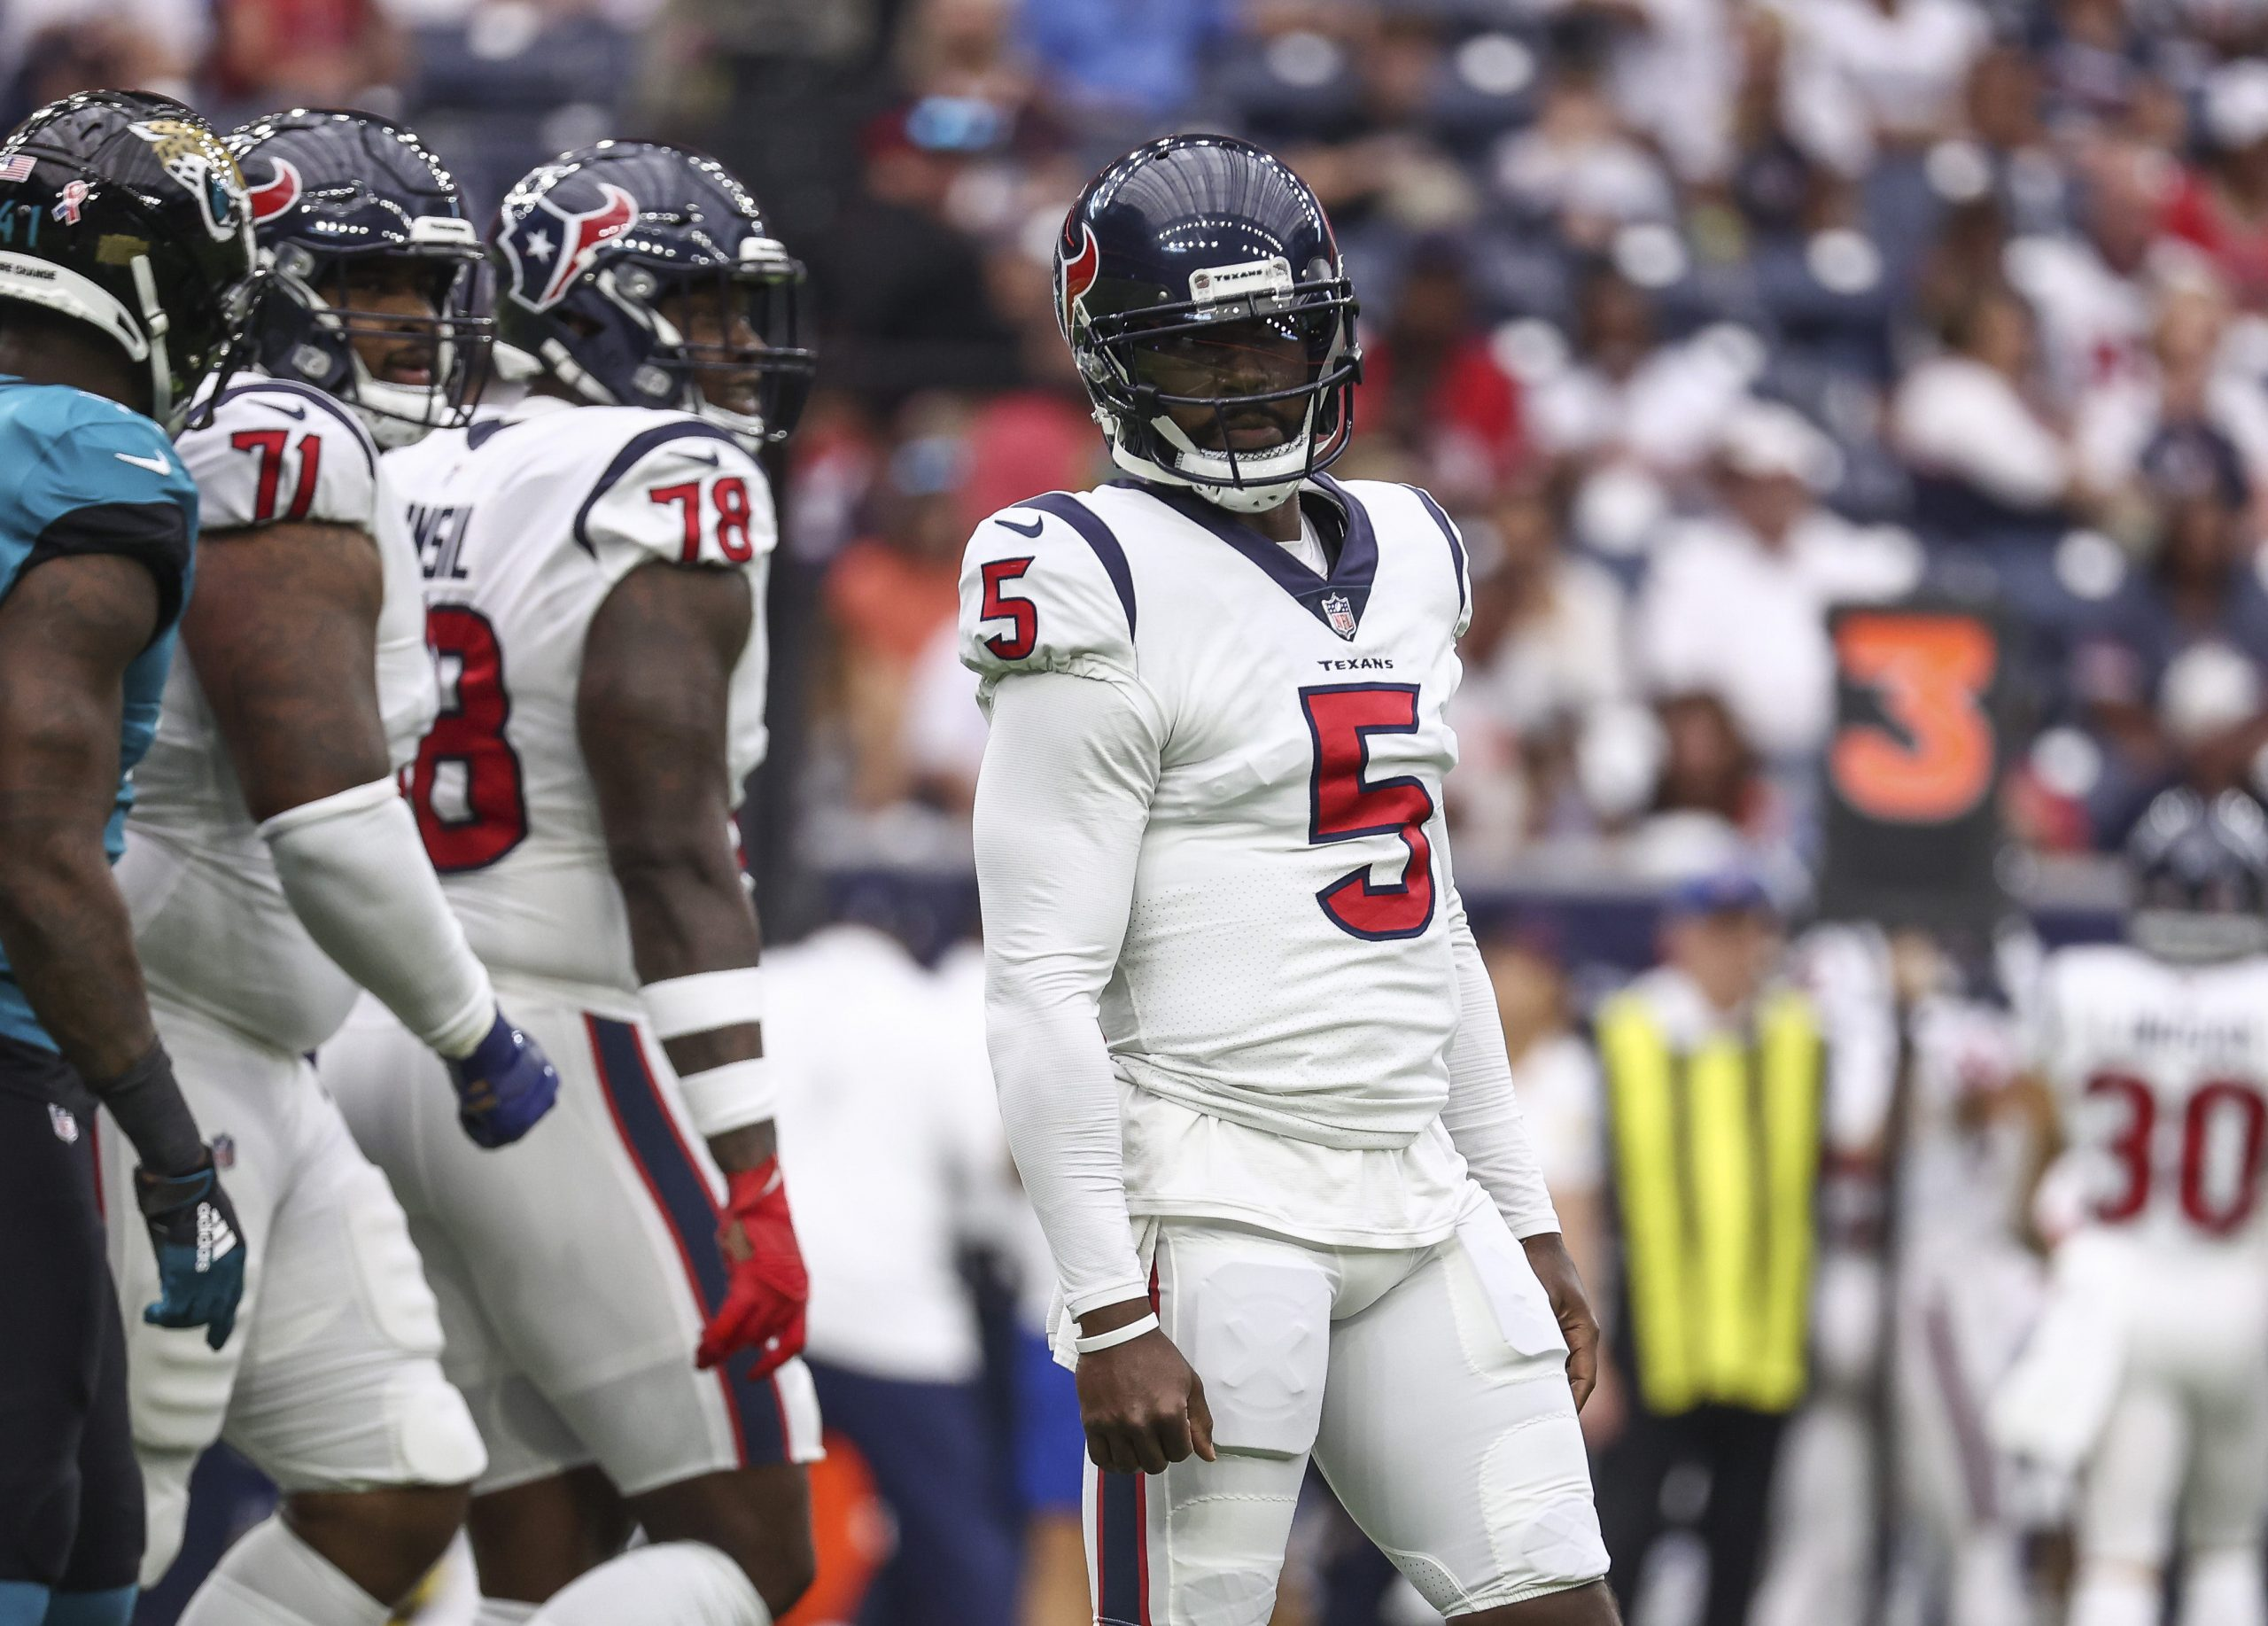 Reacting To The Texans' Blowout Win On Opening Day